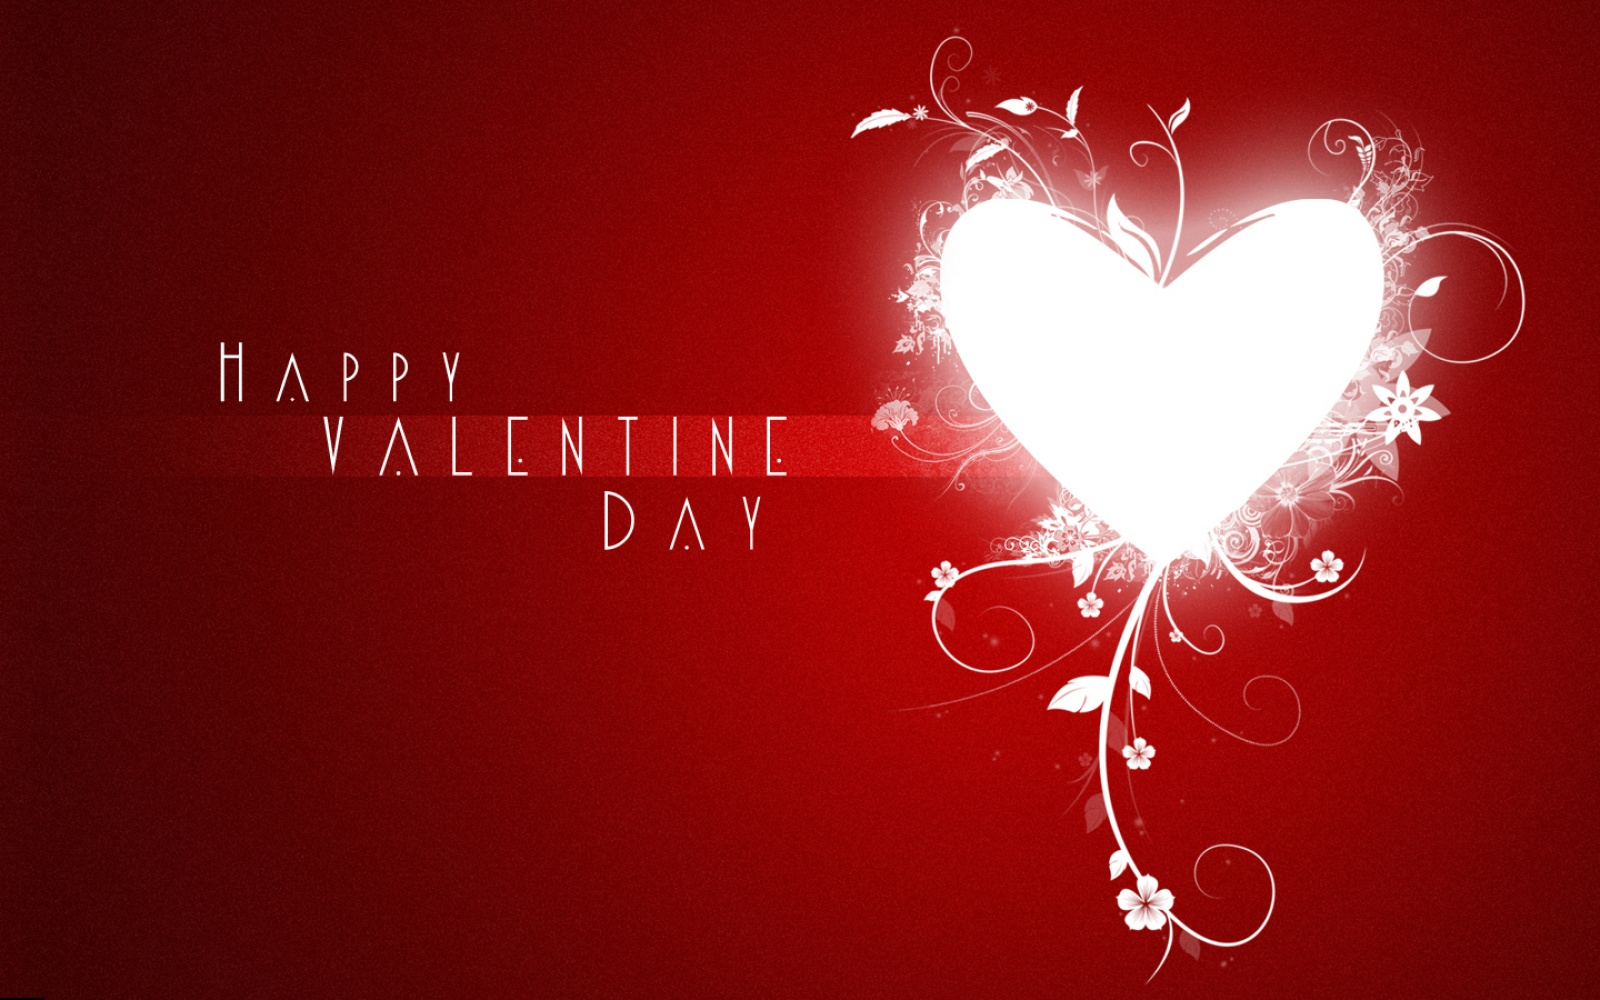 http://4.bp.blogspot.com/-C8pNlvTjpoc/TyLE9kSQshI/AAAAAAAAAlY/qqu2Wi0qLuU/s1600/The-best-desktop-valentines-day-wallpapers.jpg